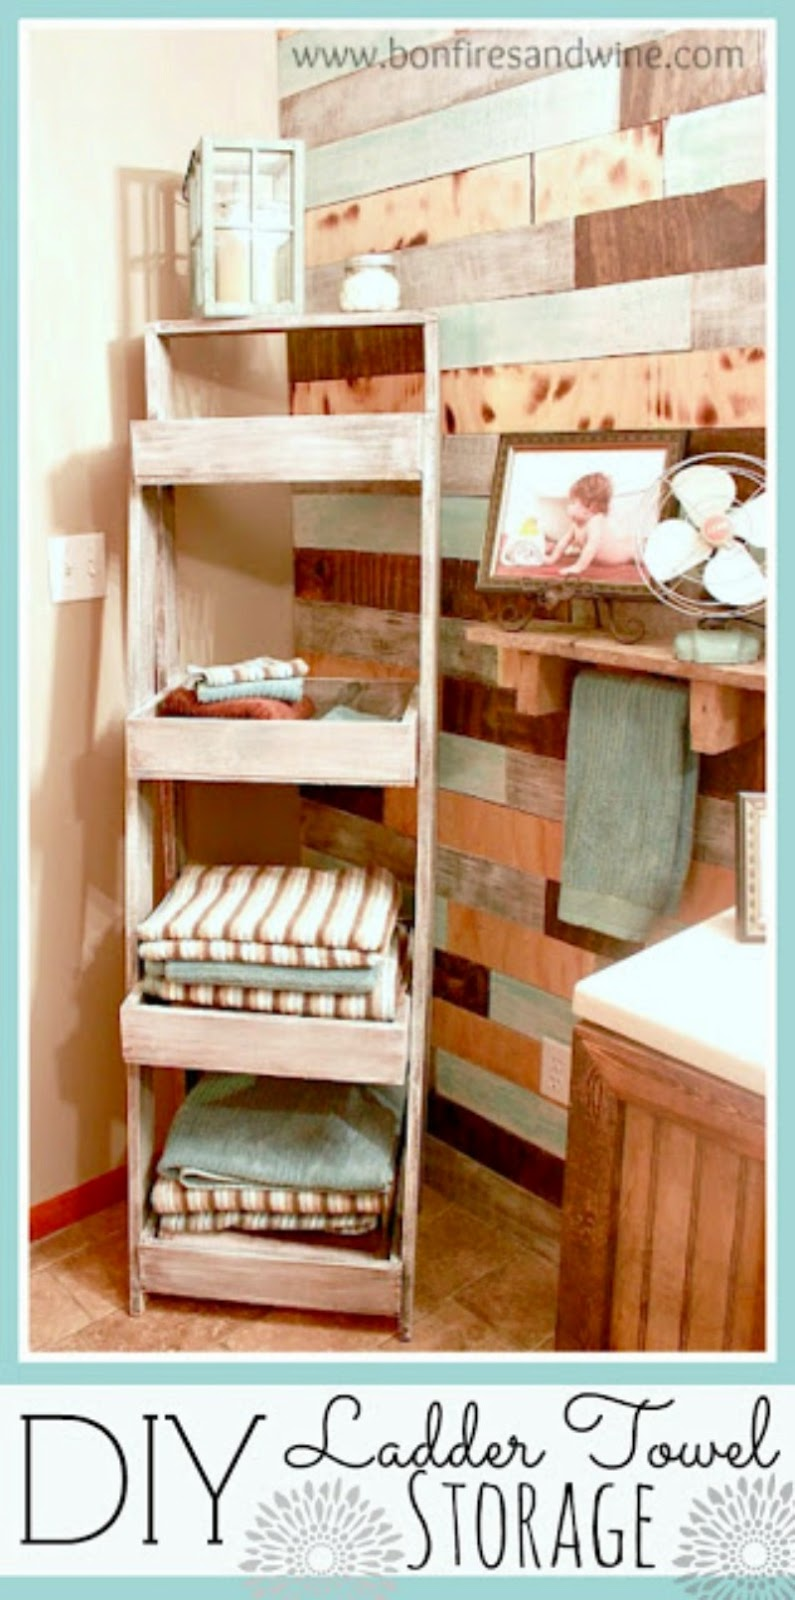 bonfires and wine: diy ladder towel storage